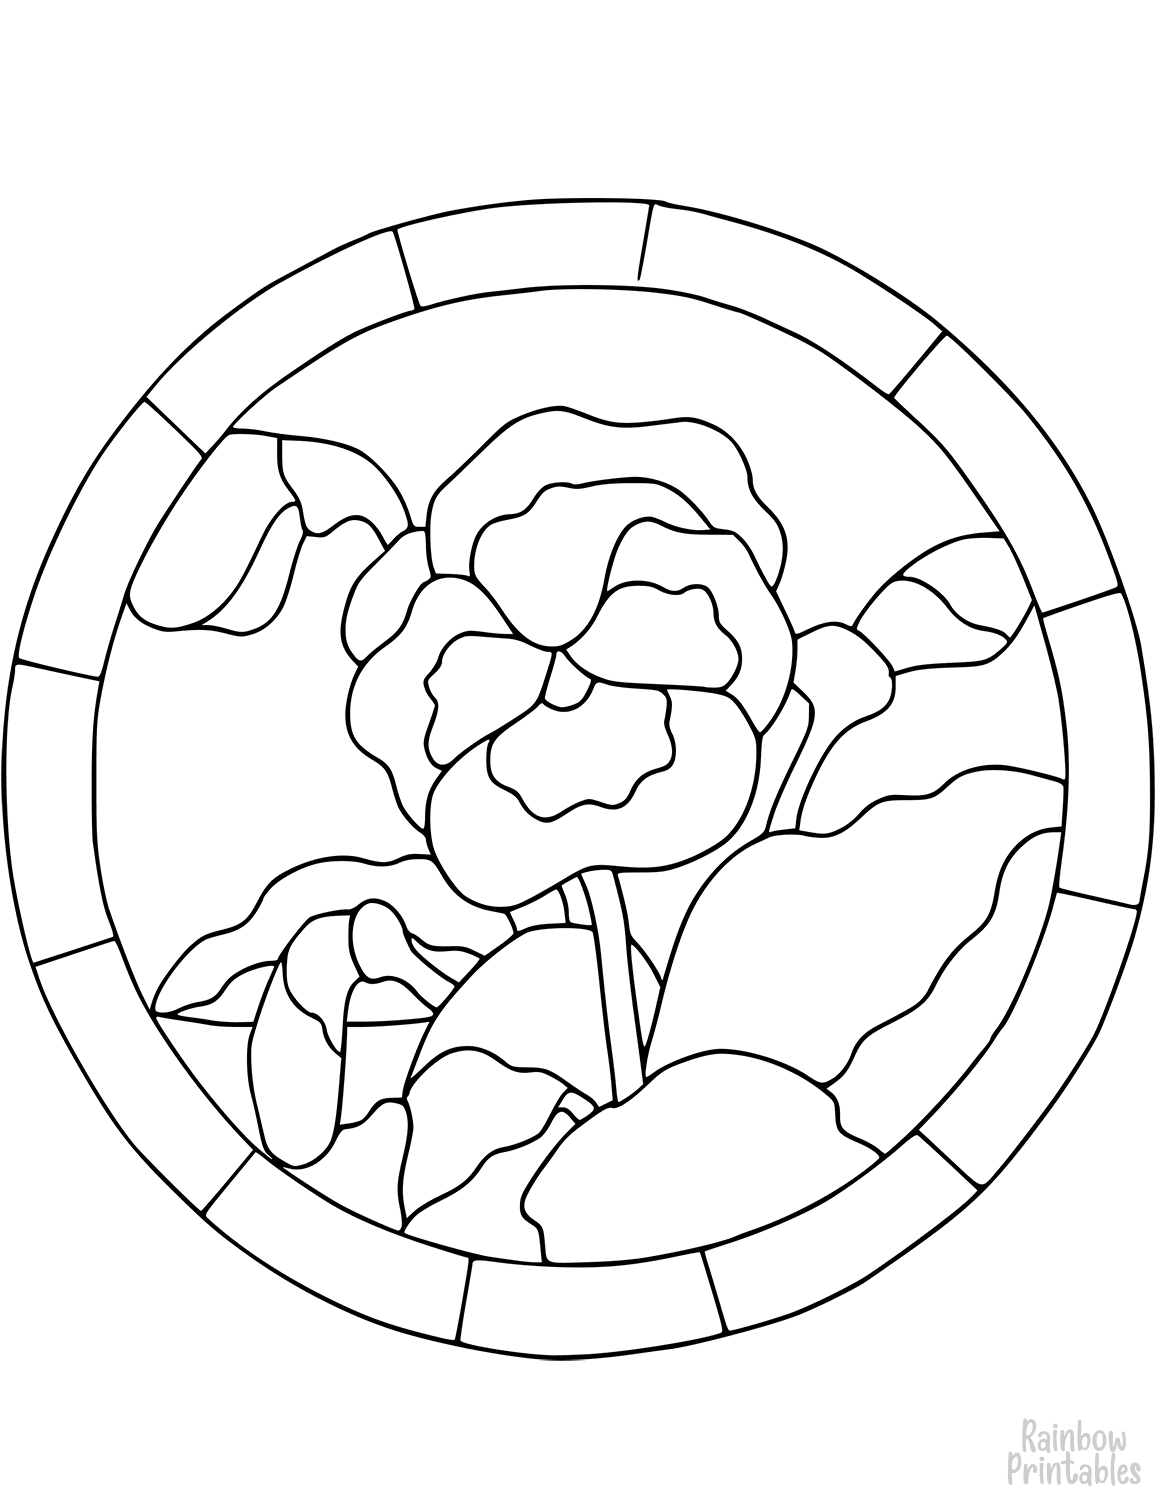 STAINED GLASS PANSY Clipart Coloring Pages for Kids Adults Art Activities Line Art